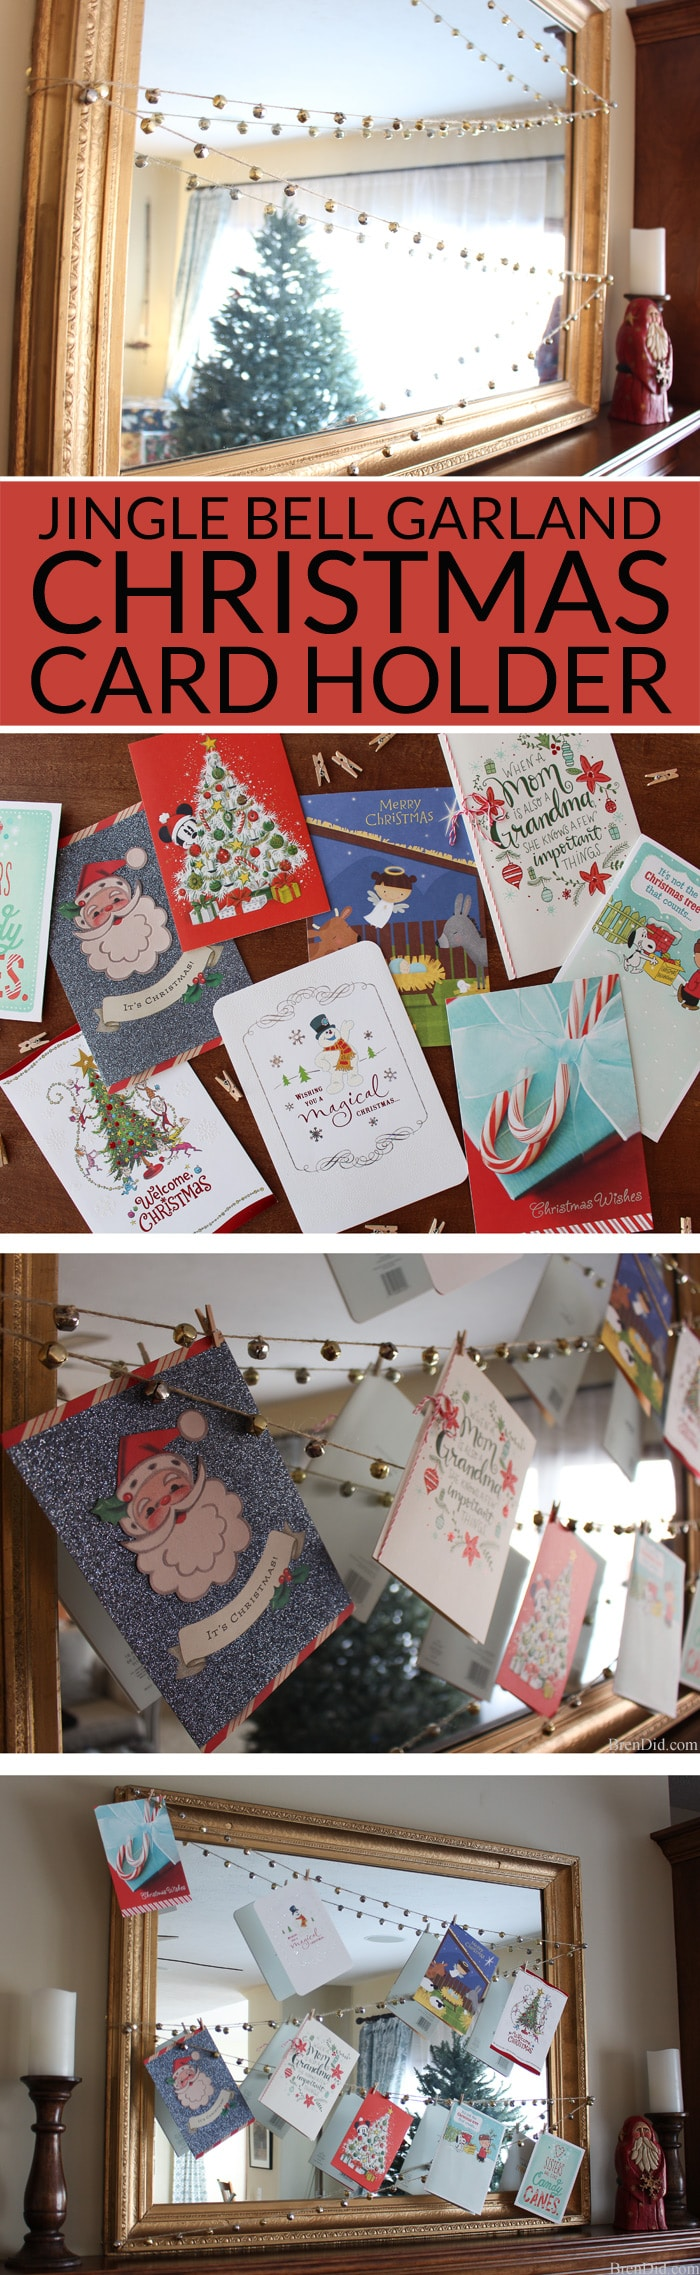 Enjoy your holiday cards all season long with this easy DIY Jingle Bell Garland Christmas Card Display. A 20 minute Christmas DIY project.